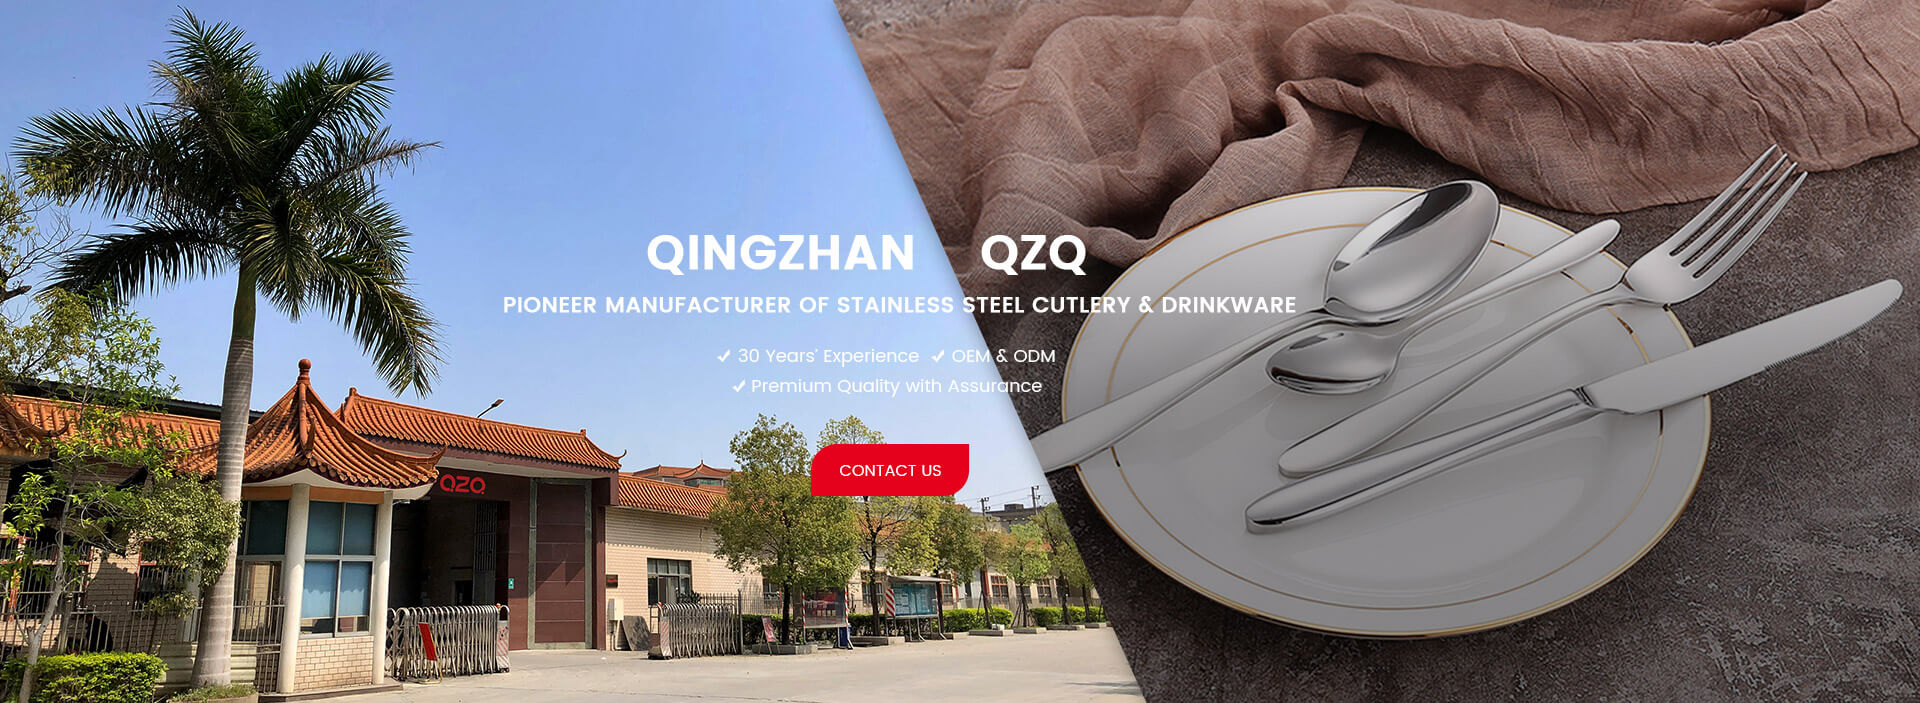 QINGZHAN QZQ Pioneer Manufacturer of stainless steel cutlery & Drinkware